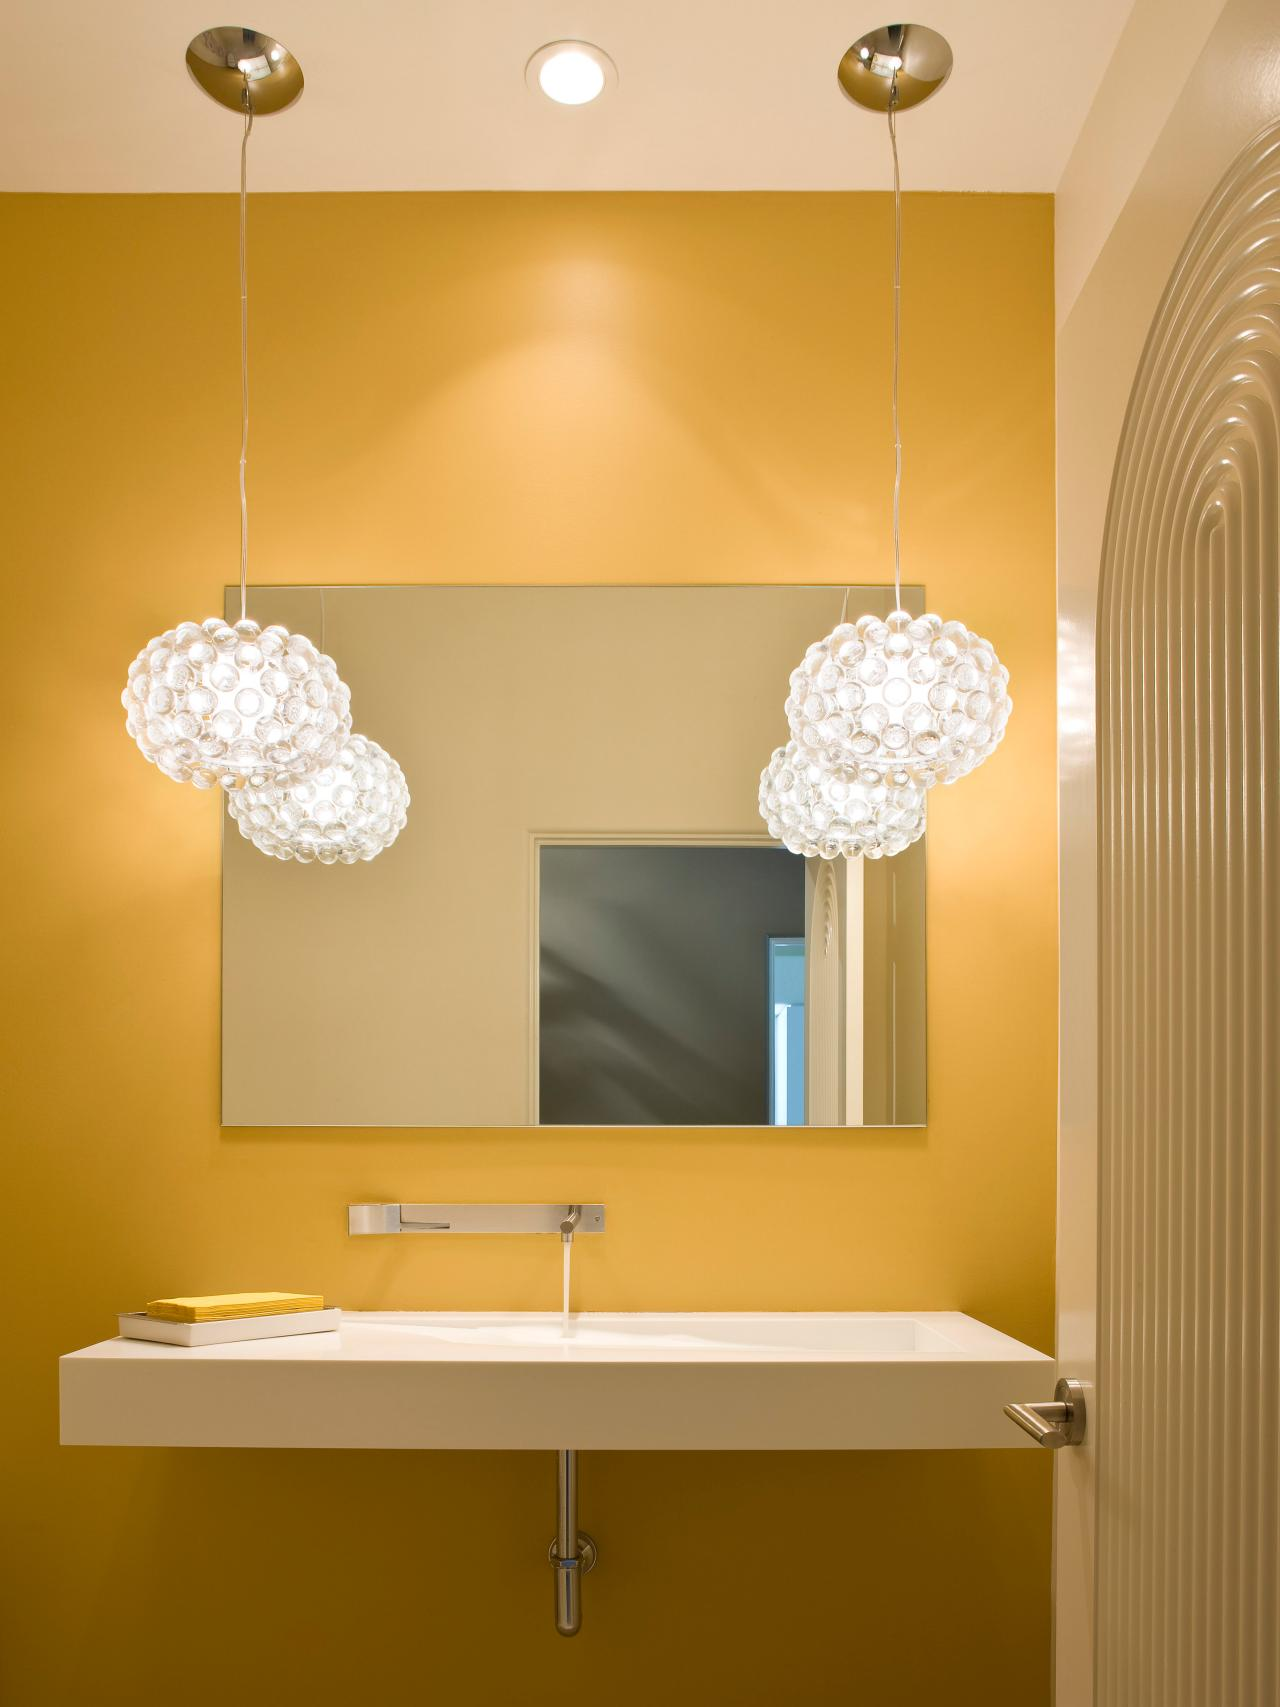 Yellow bathrooms 7 bright ideas bathroom design for Bathroom ideas yellow tile